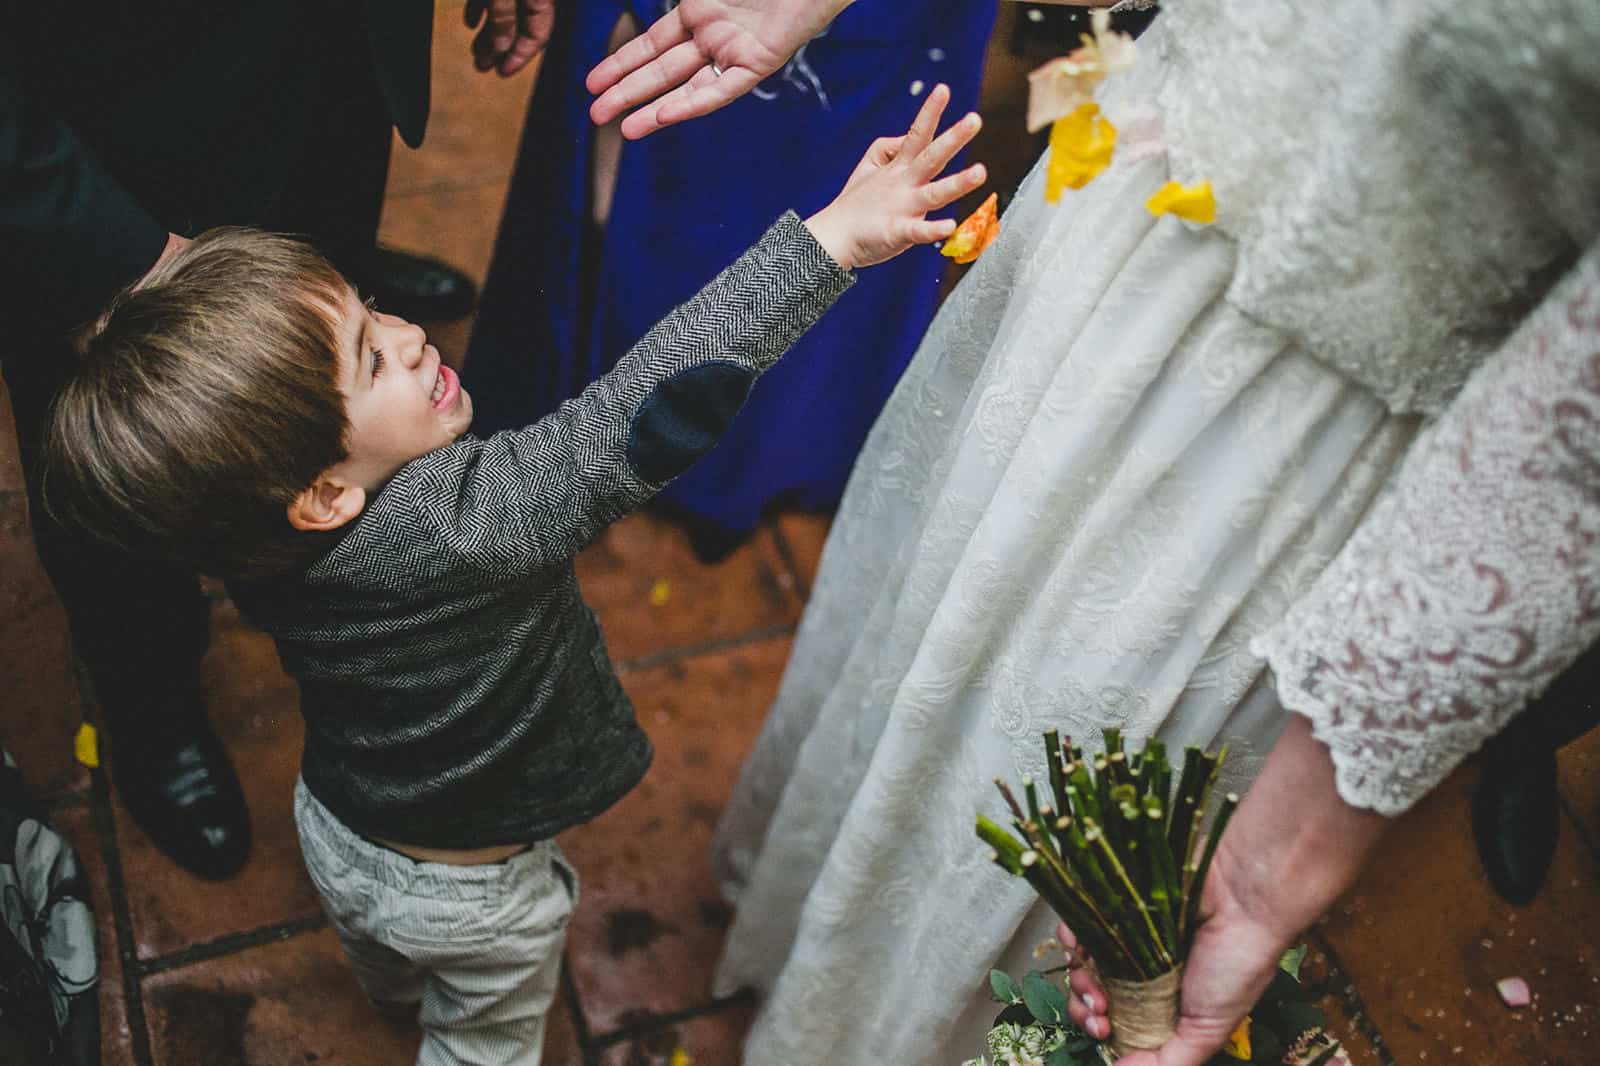 little kid throws petals to the bride